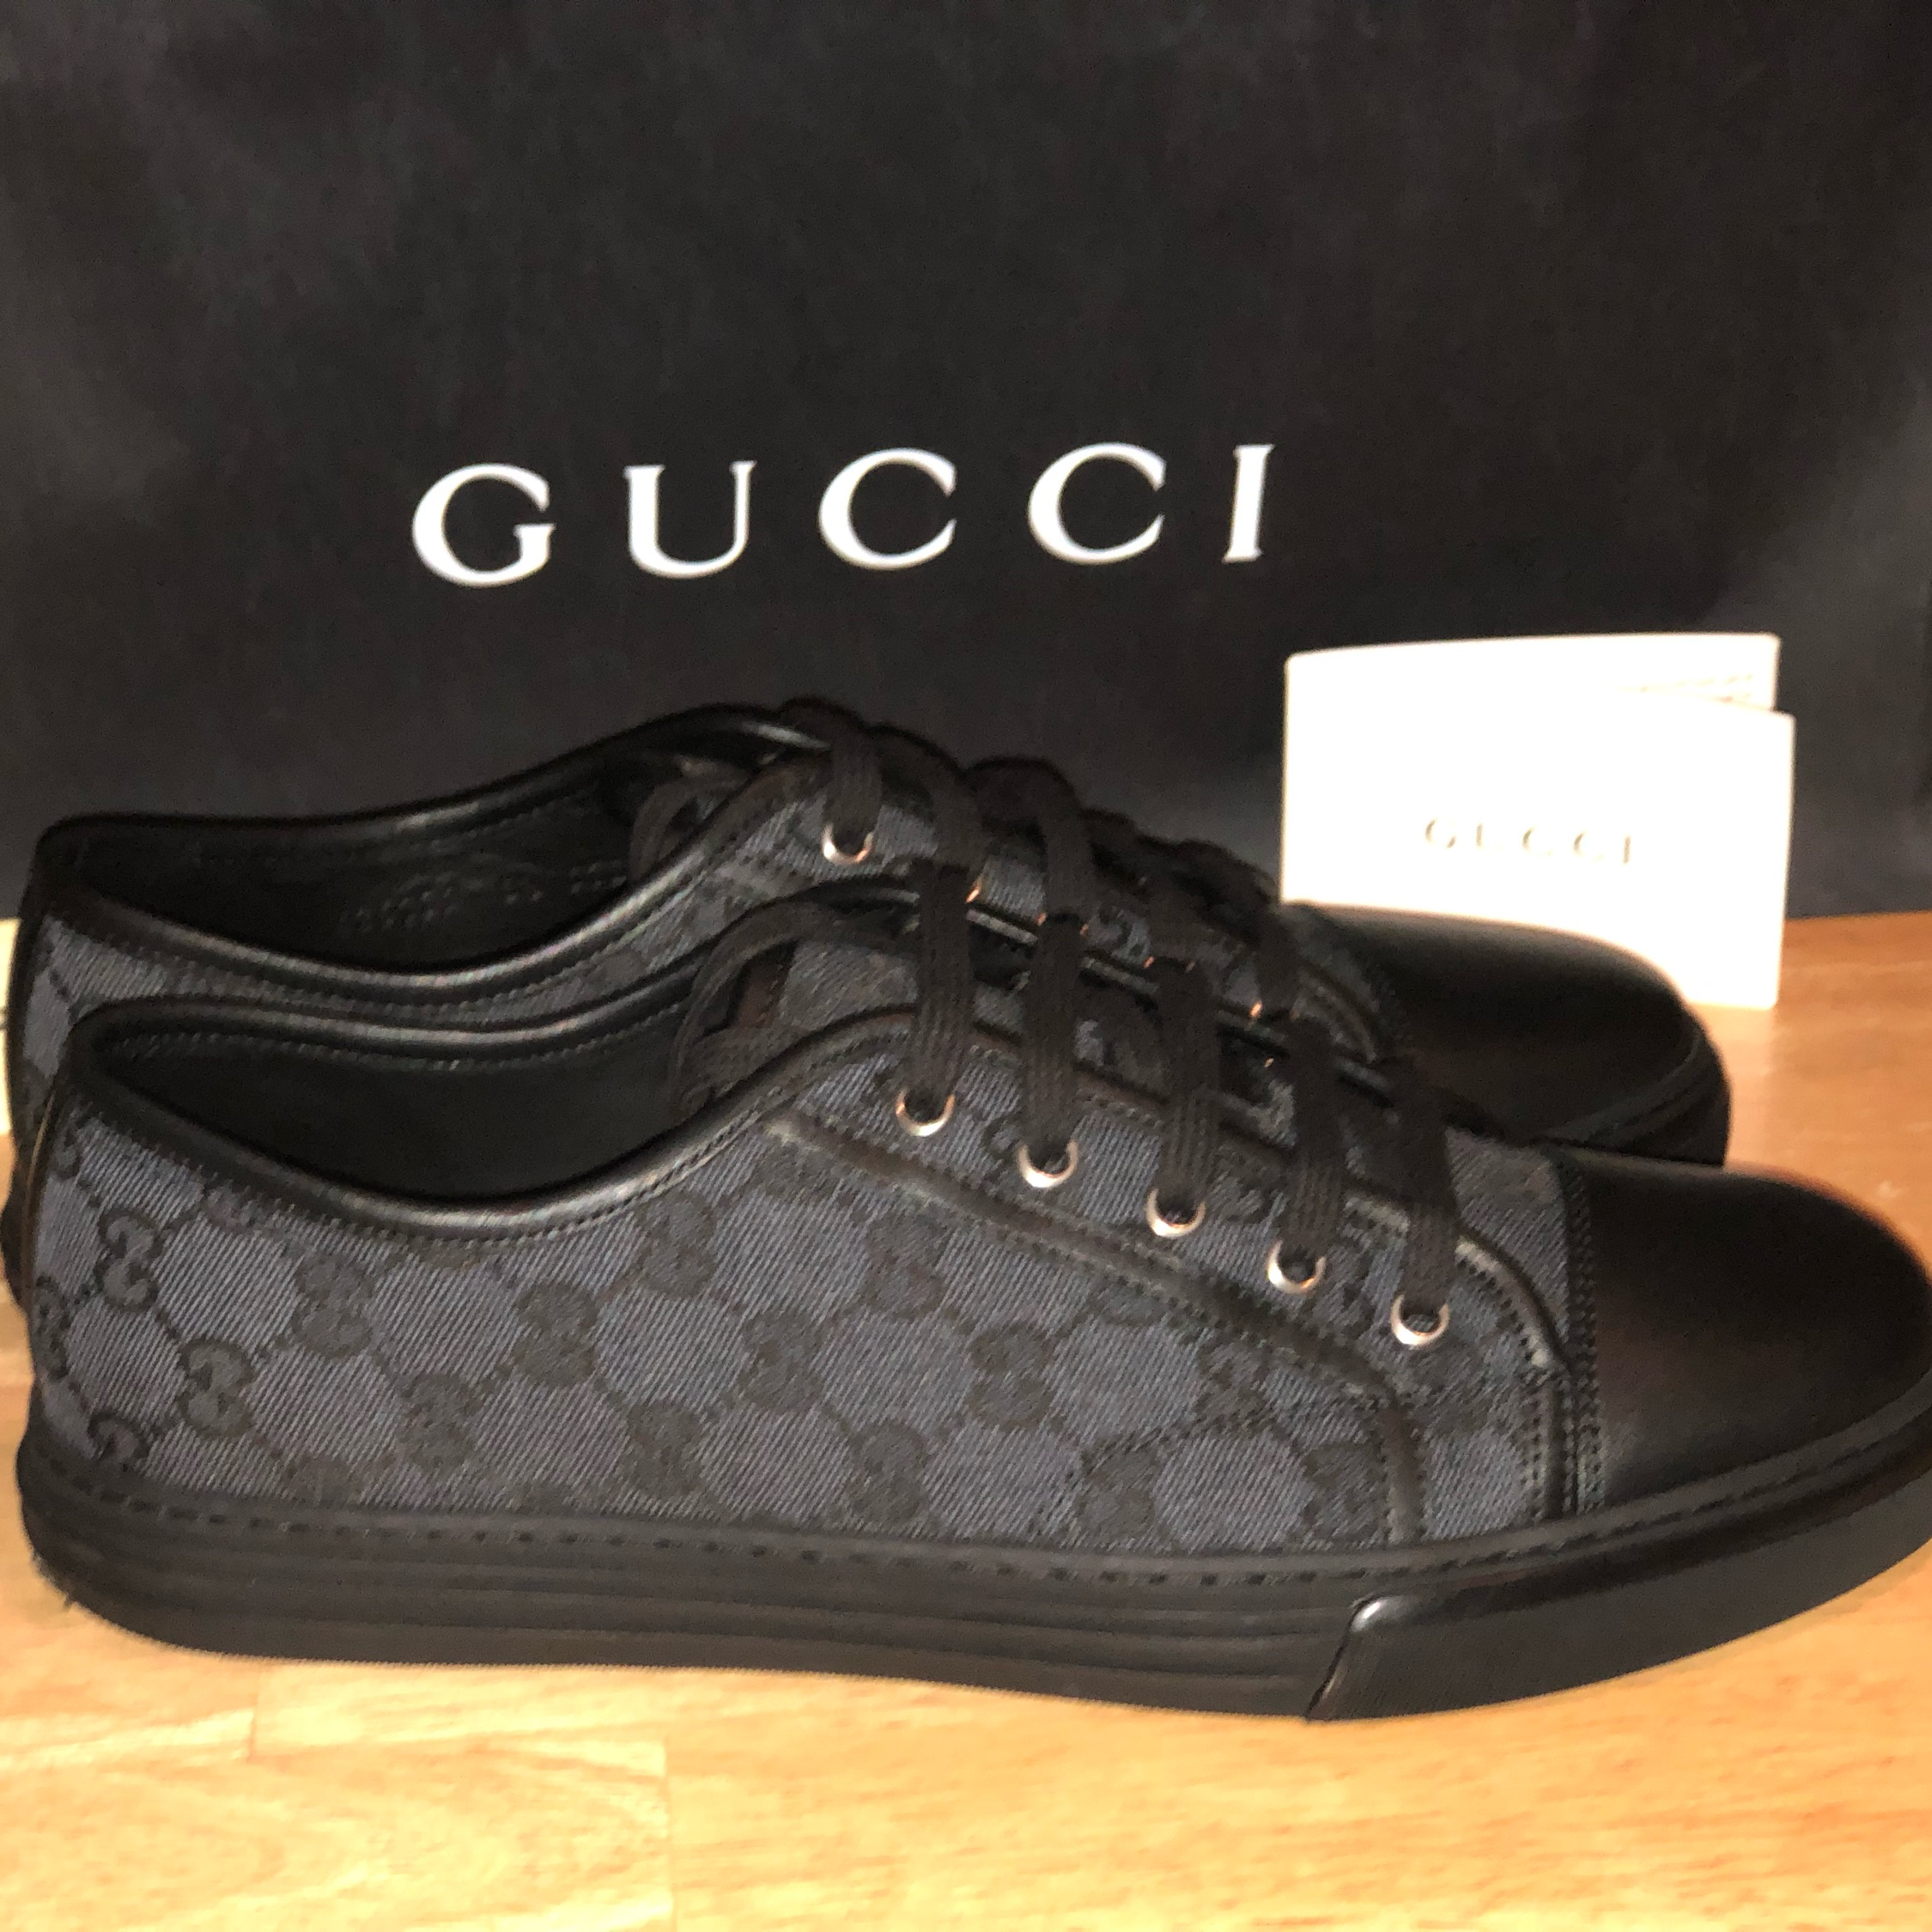 black gucci loafers buy clothes shoes